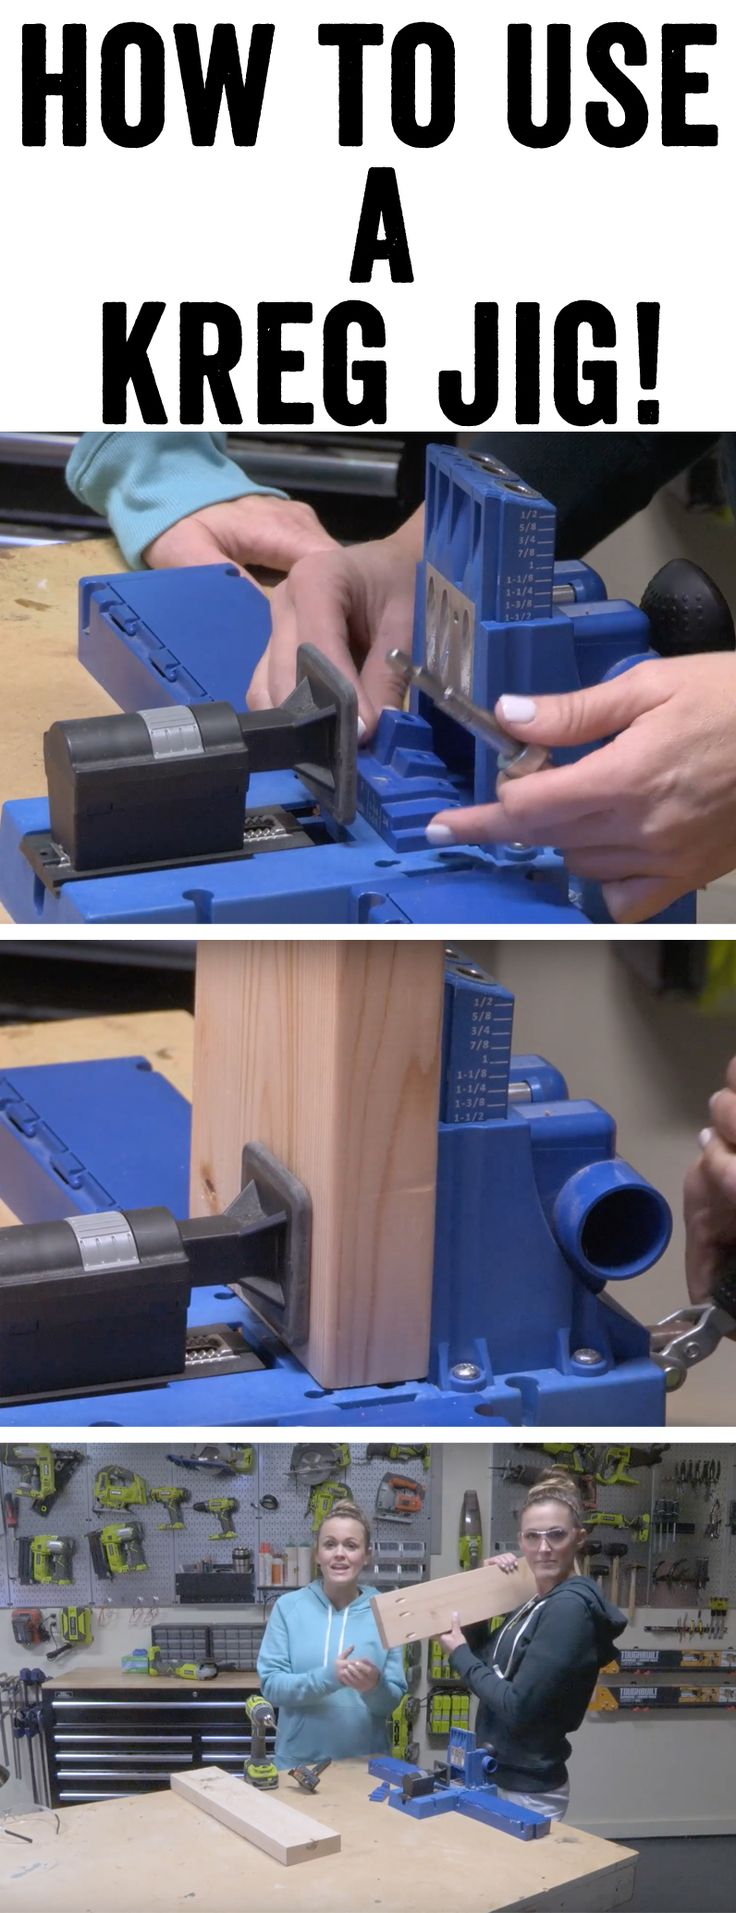 Our FAVORITE TOOL! Check out this YouTube video tutorial on how to use a Kreg Jig to build your own DIY Furniture by Shanty2Chic!